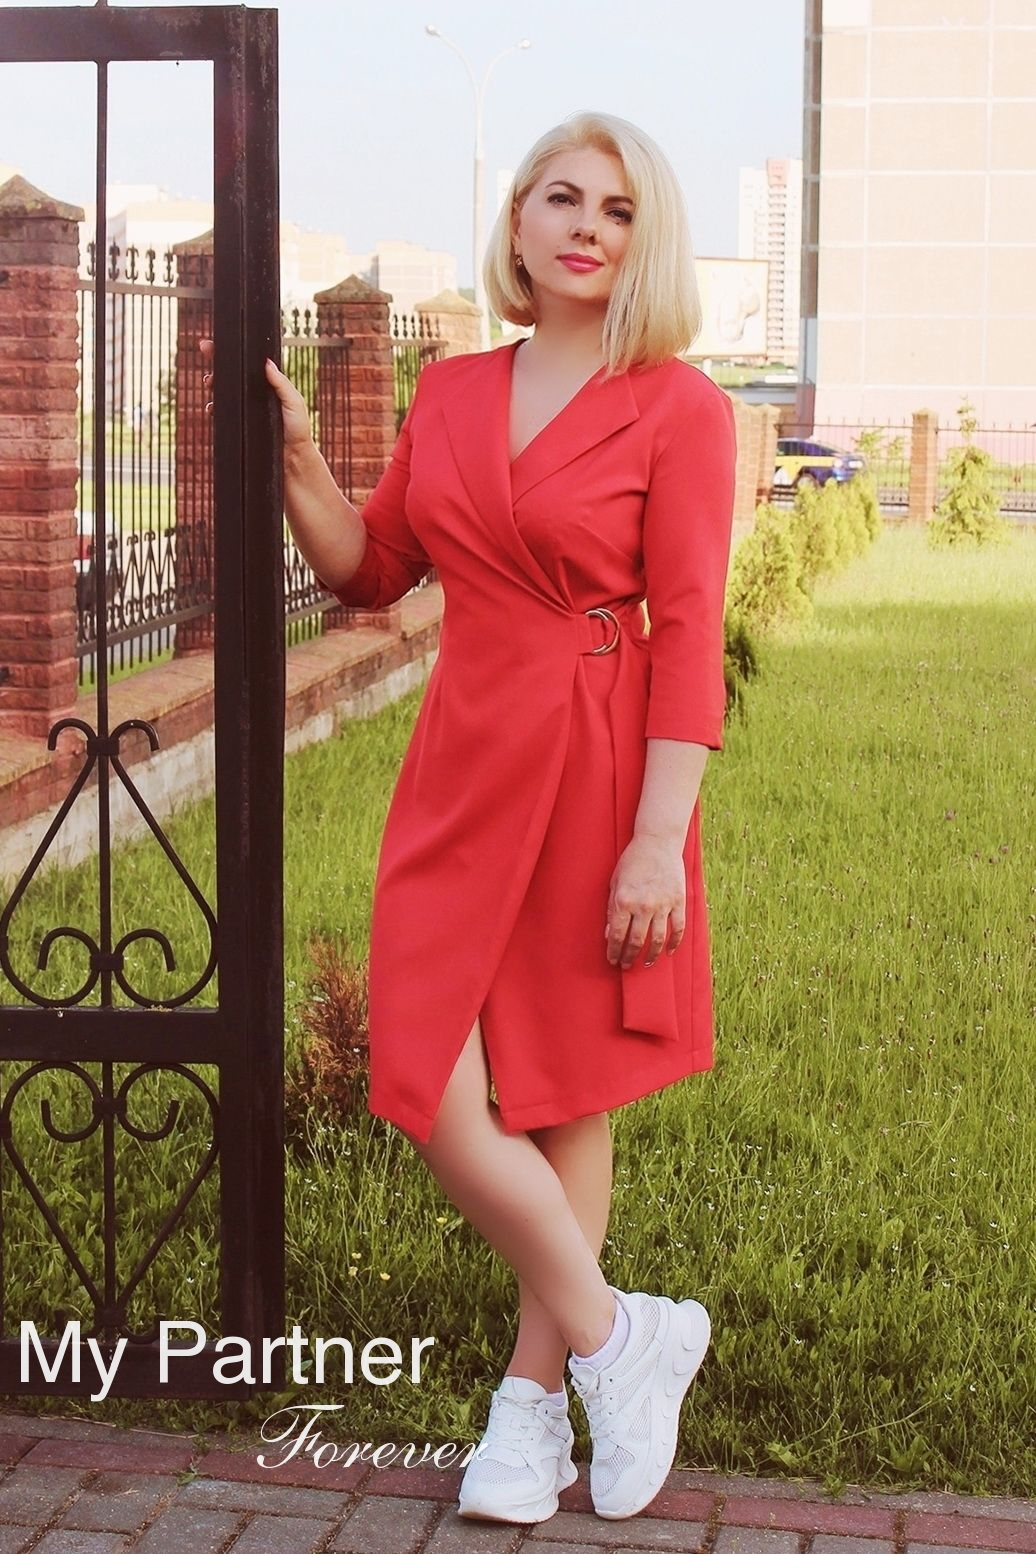 Charming Bride from Belarus - Alla from Grodno, Belarus